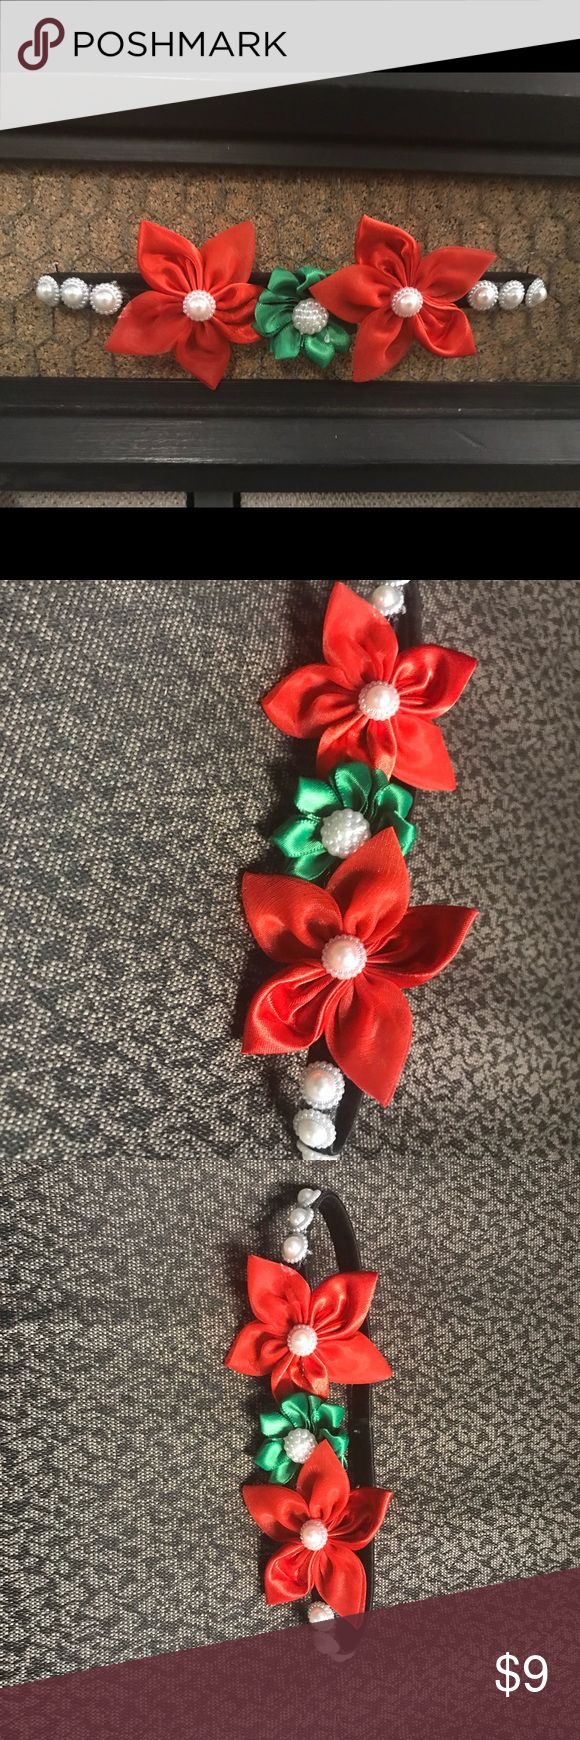 Christmas flower headband One of a kind, handmade by myself. Adolescent to adult Christmas headband. Red and green with pearls. Accessories Hair Accessories